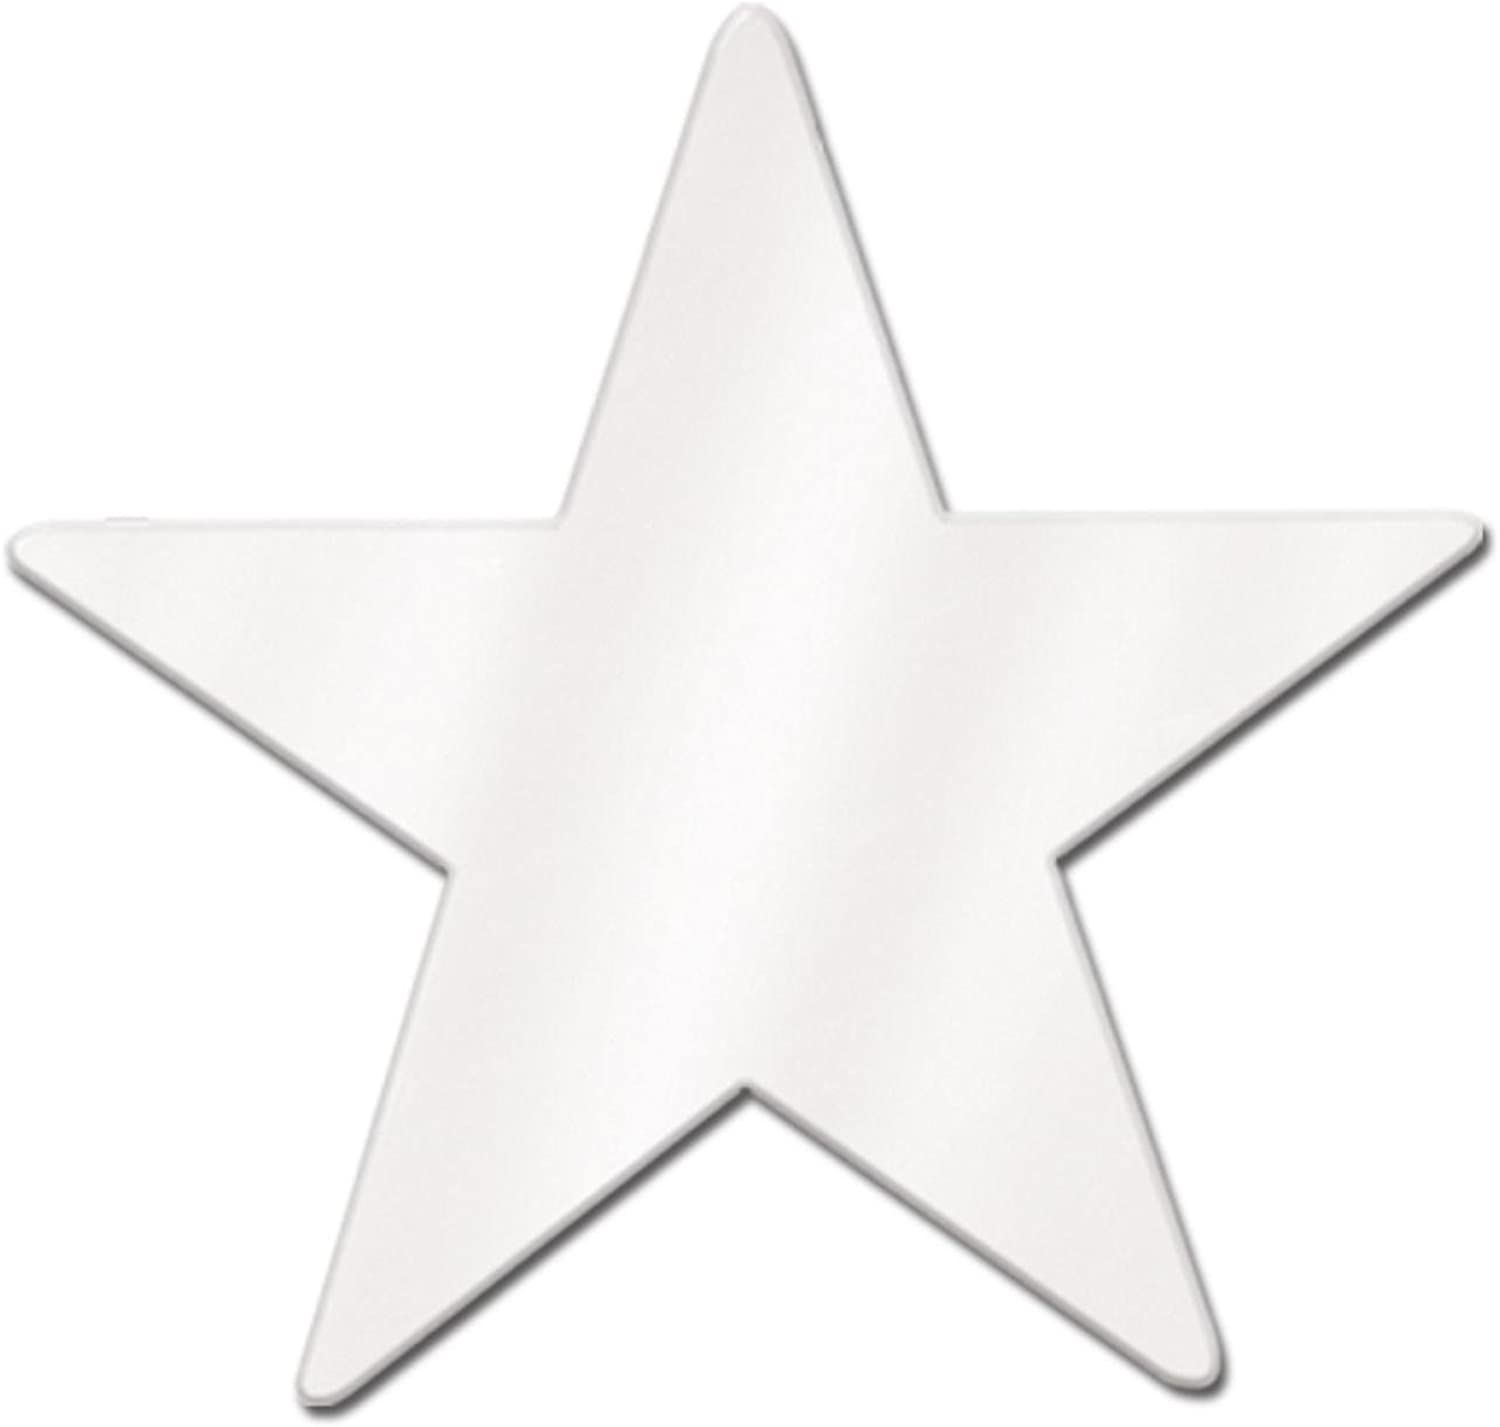 Club Pack of 24 Starry Night Themed White Metallic Foil Star Cutout Party Decorations 15